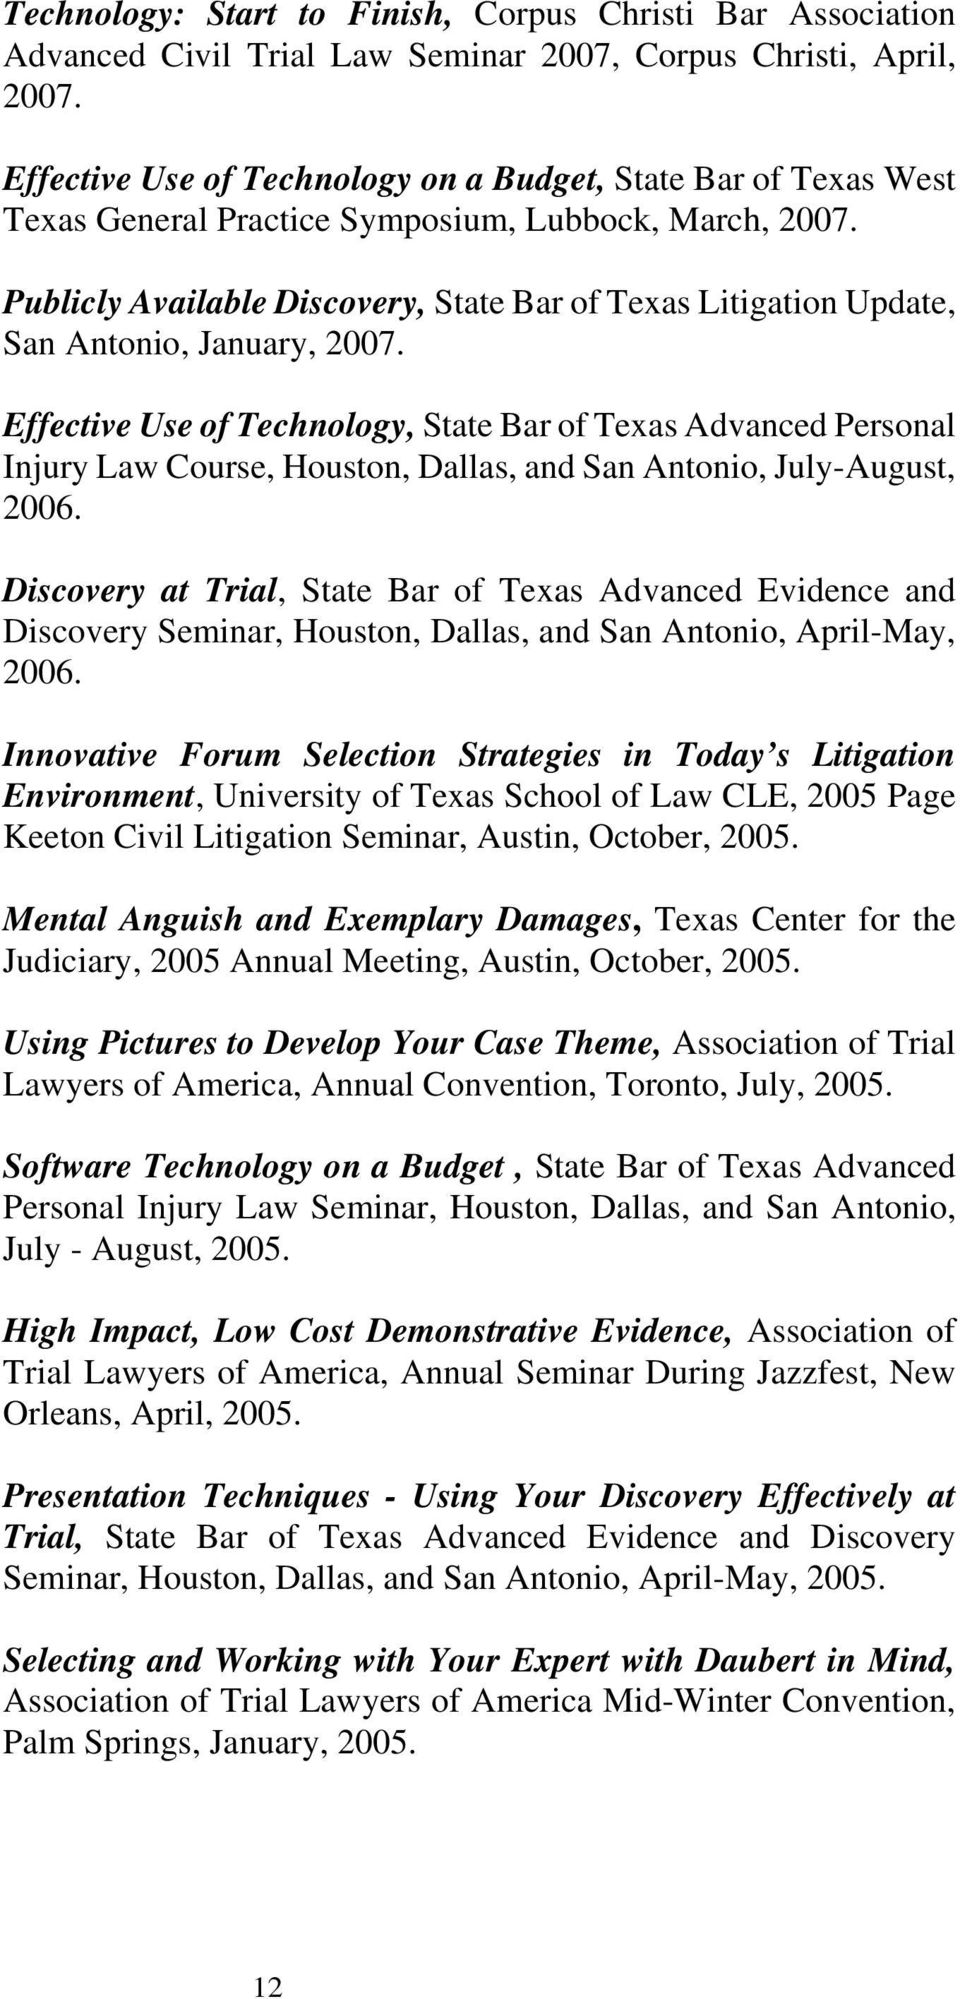 Publicly Available Discovery, State Bar of Texas Litigation Update, San Antonio, January, 2007.